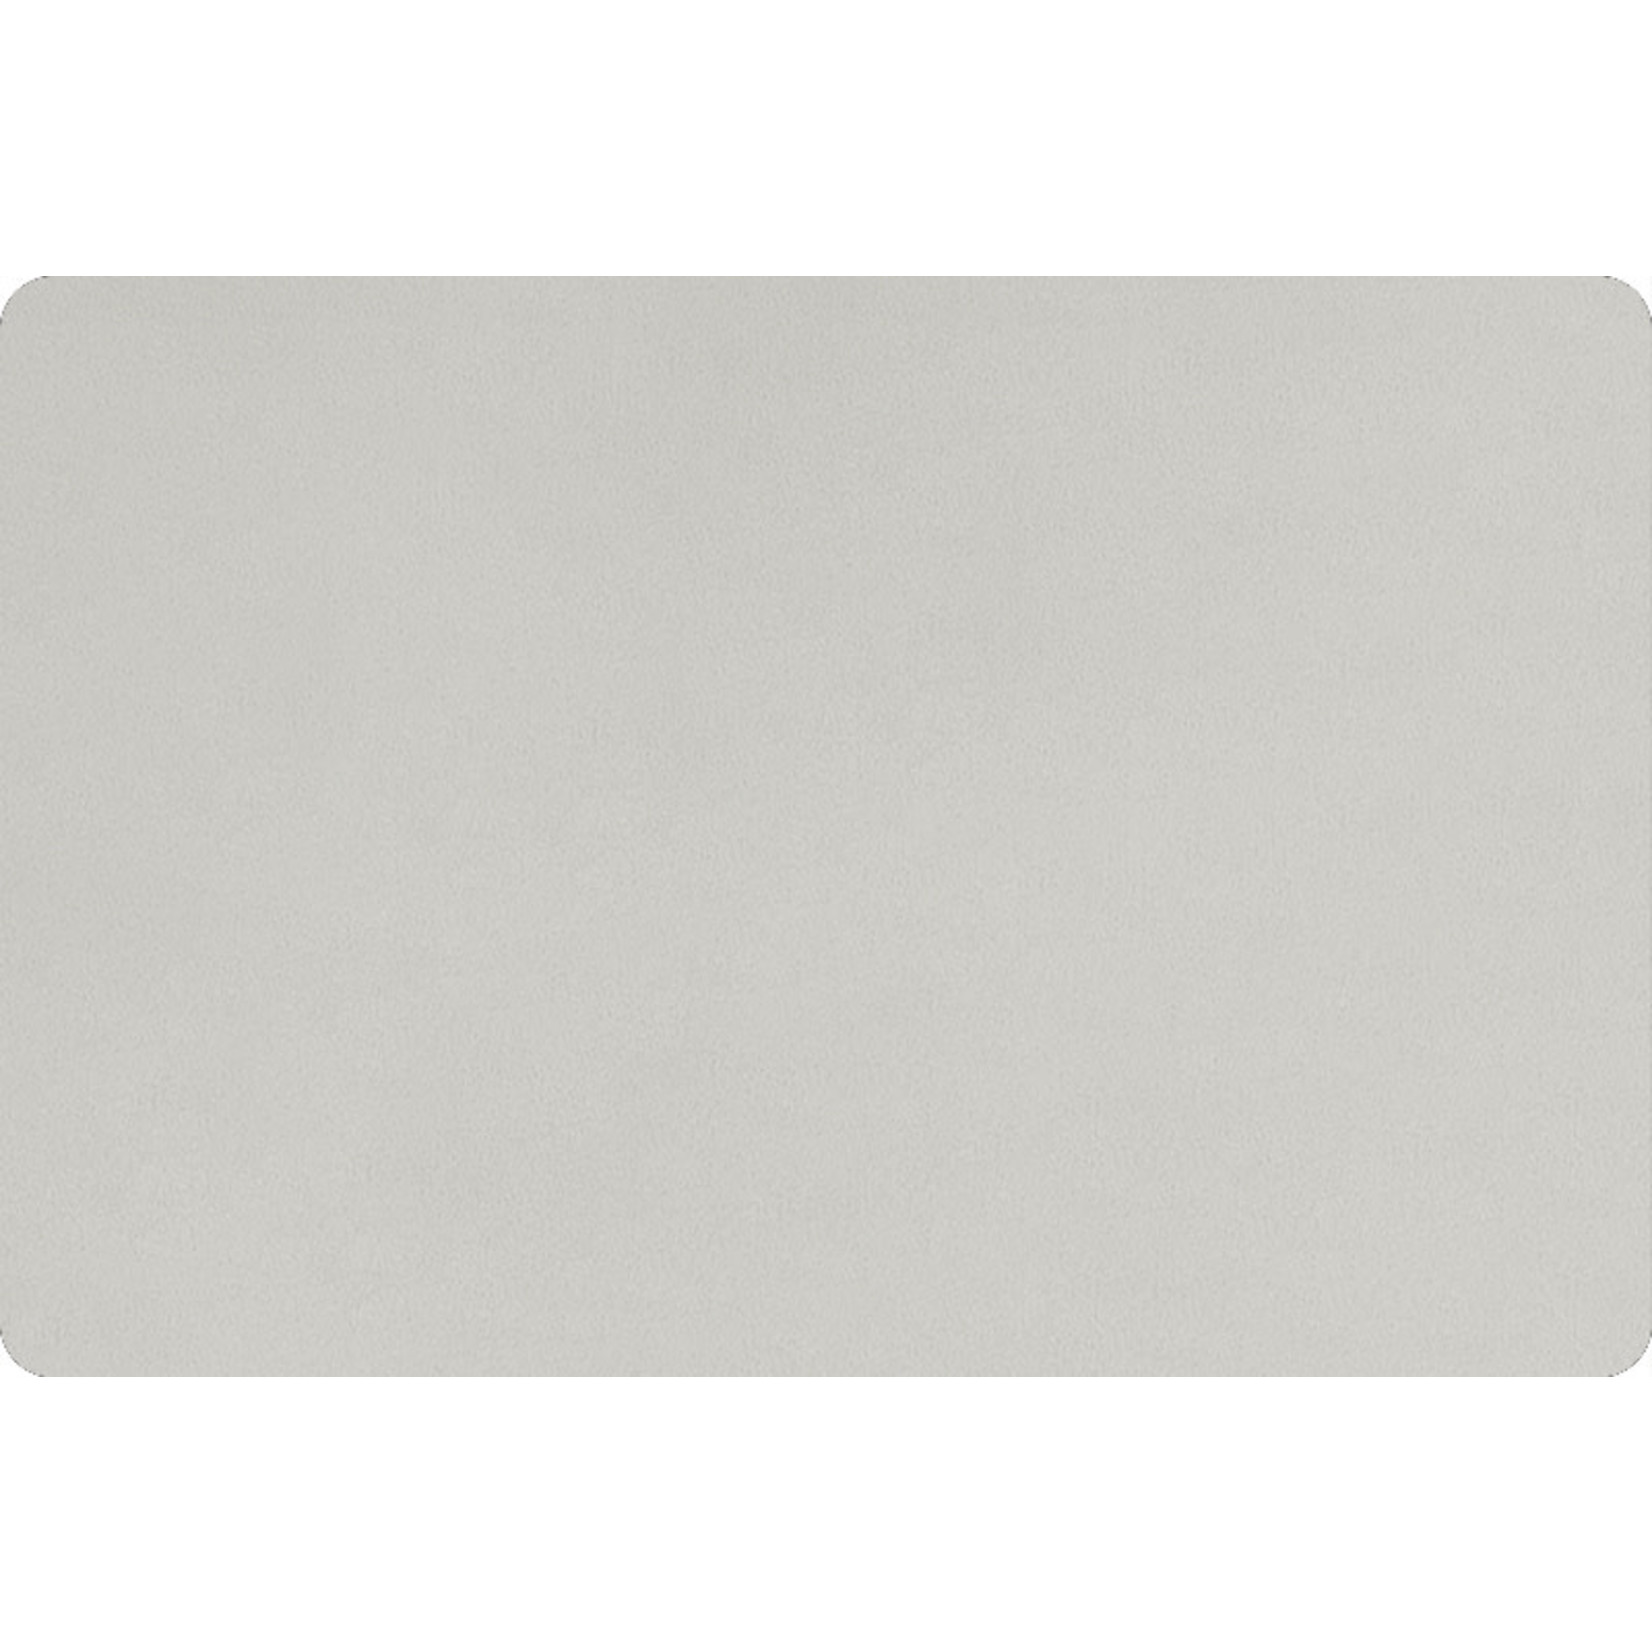 """Shannon Fabrics Minky, Extra Wide Solid Cuddle3, 90"""" Platinum, (by the inch)"""